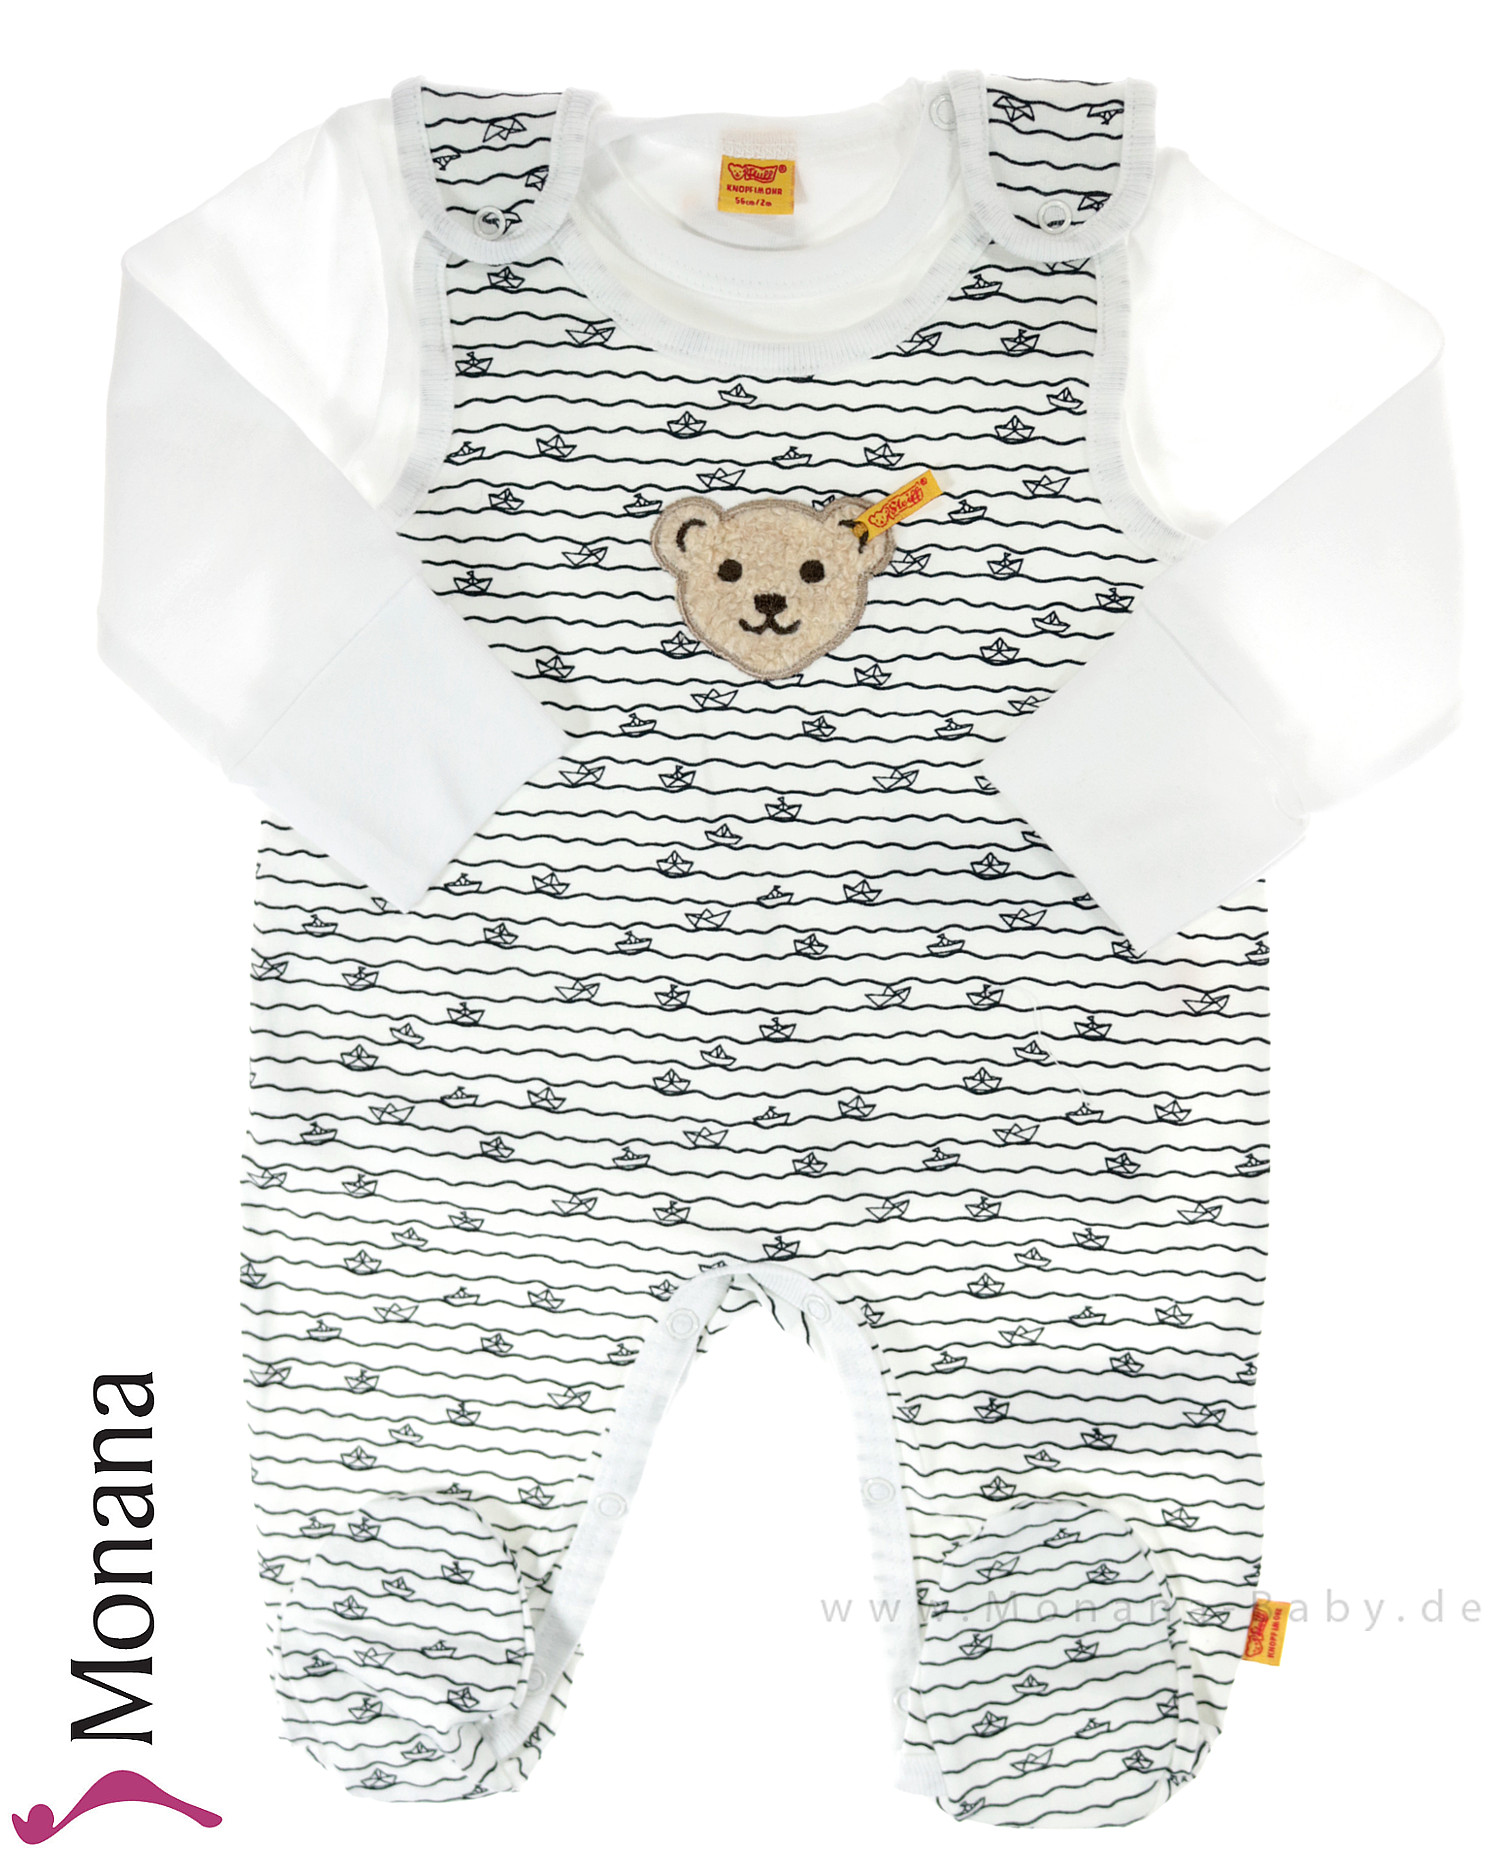 Steiff Collection Baby-Strampler & Baby-Shirt Summer Colors<br>Größe: 62, 68, 74